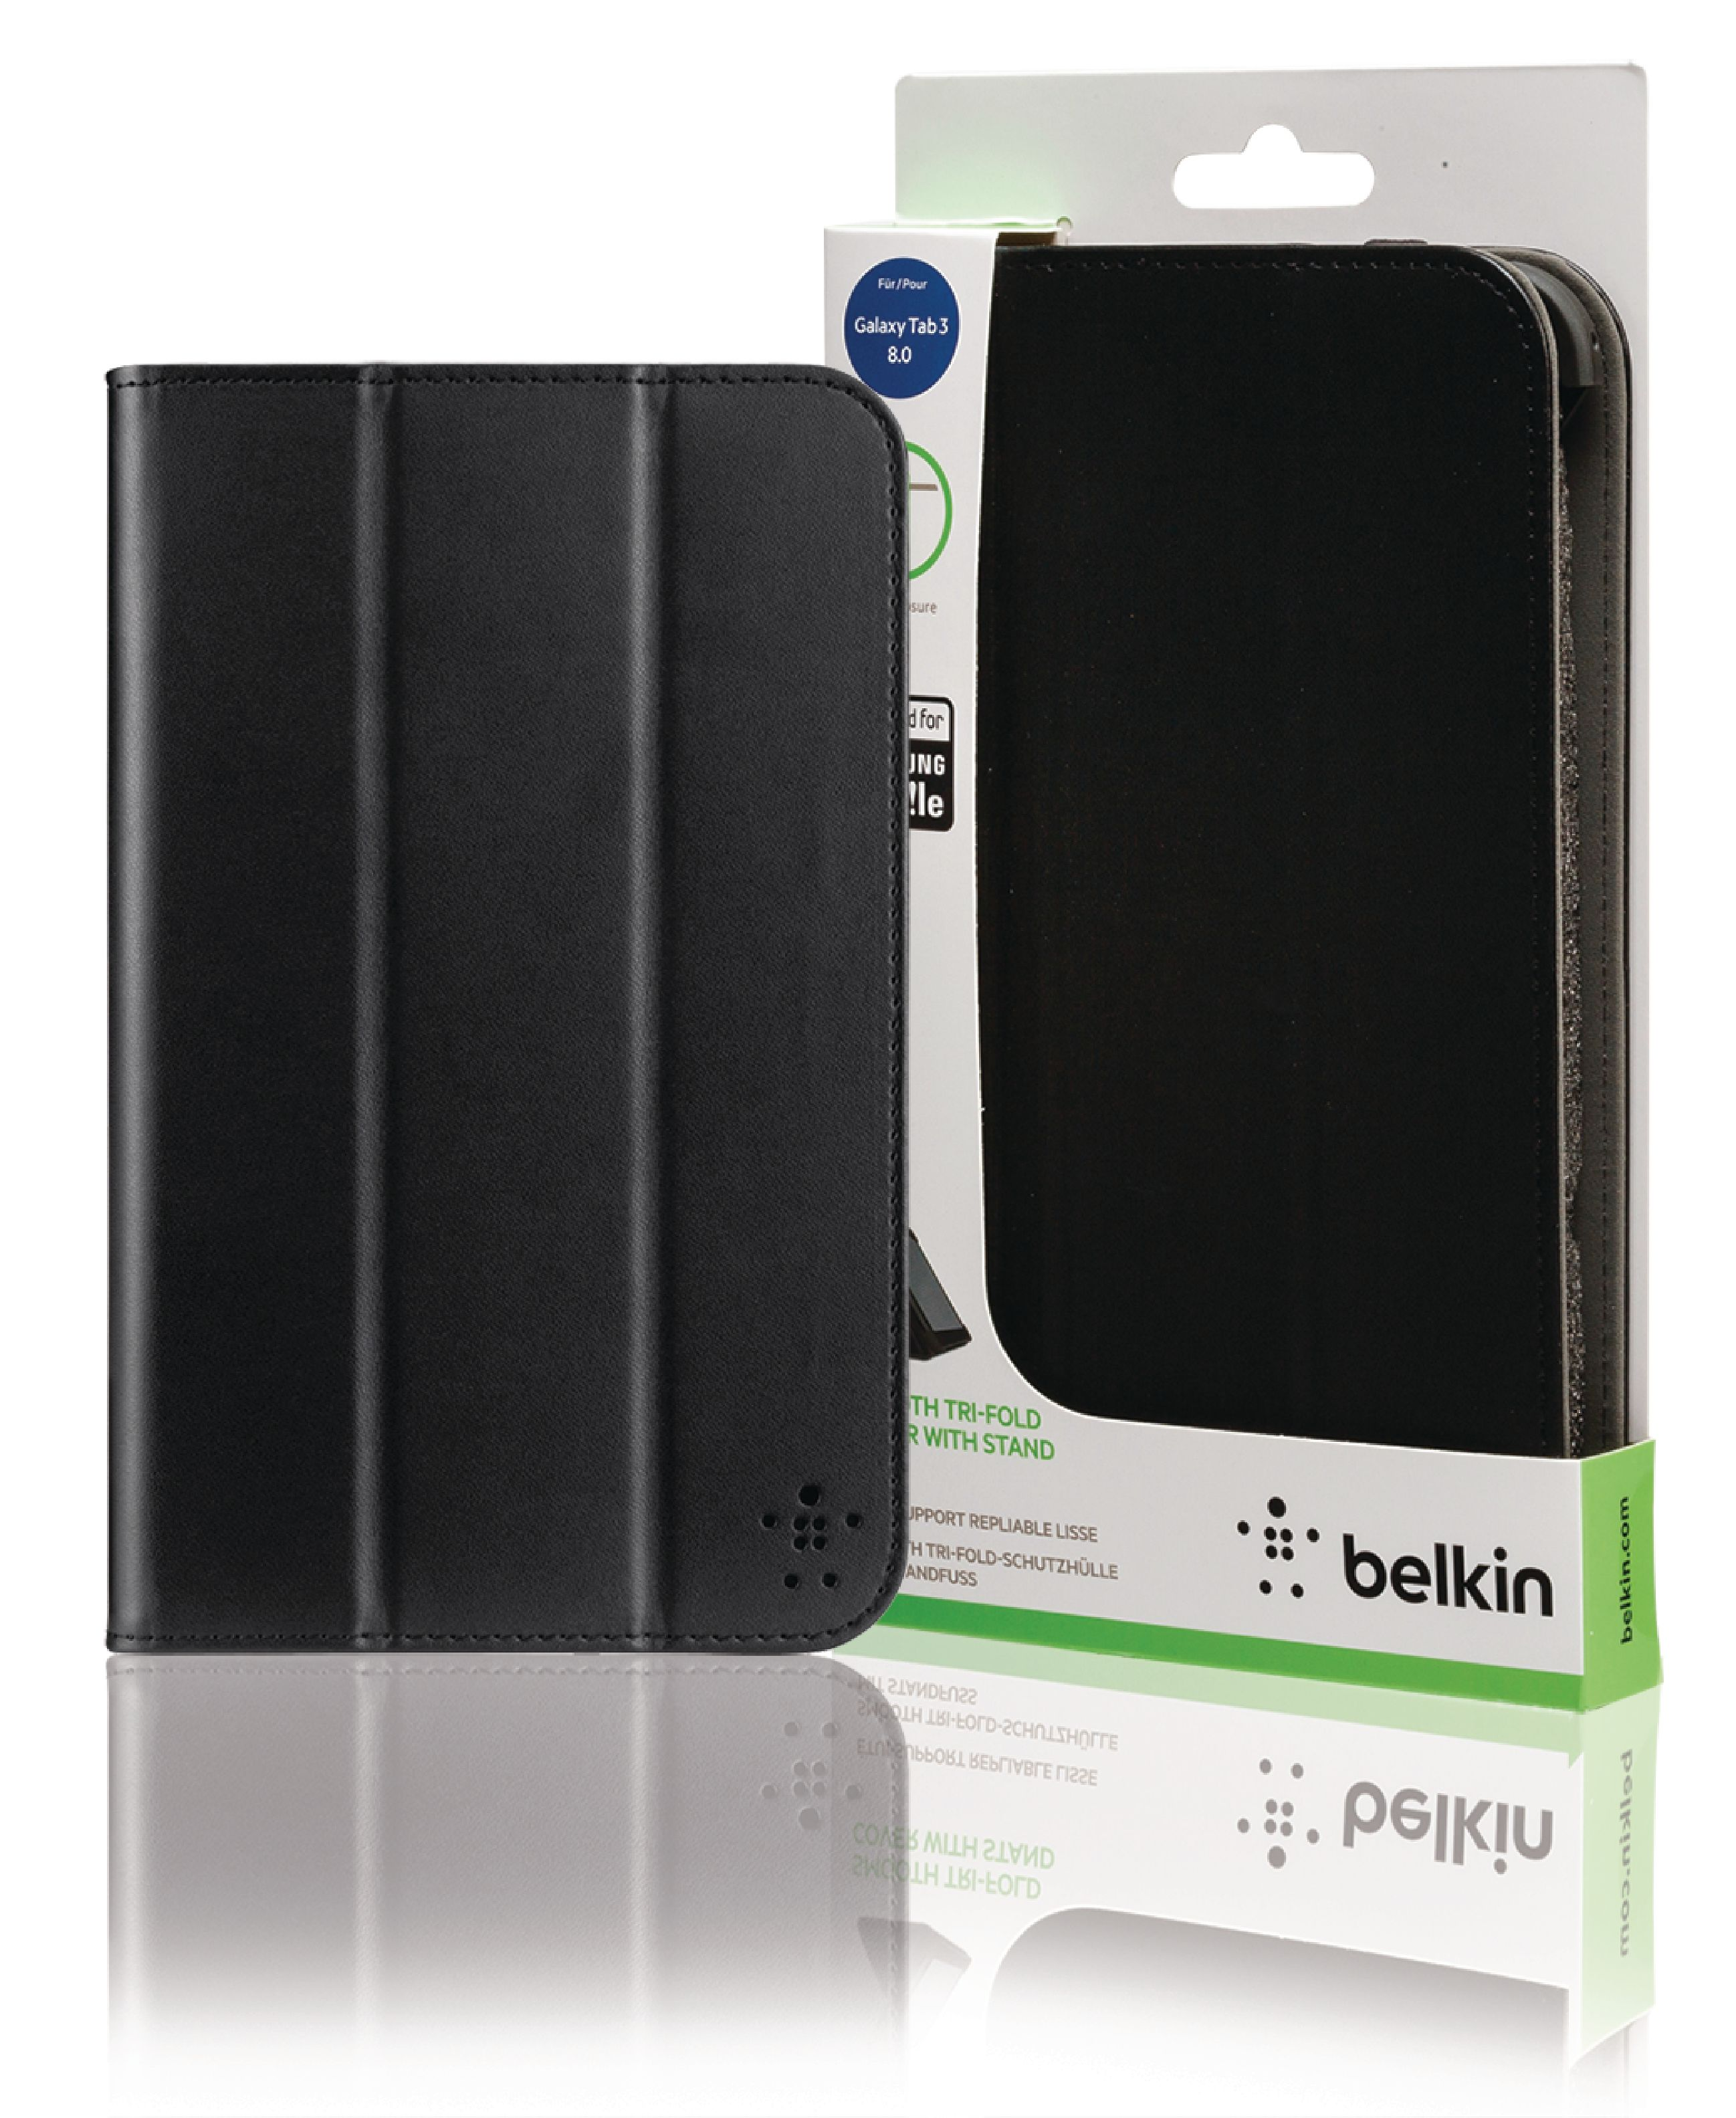 accbel00920b belkin etui de protection pour tablette portfolio samsung galaxy tab 3 8 noir. Black Bedroom Furniture Sets. Home Design Ideas